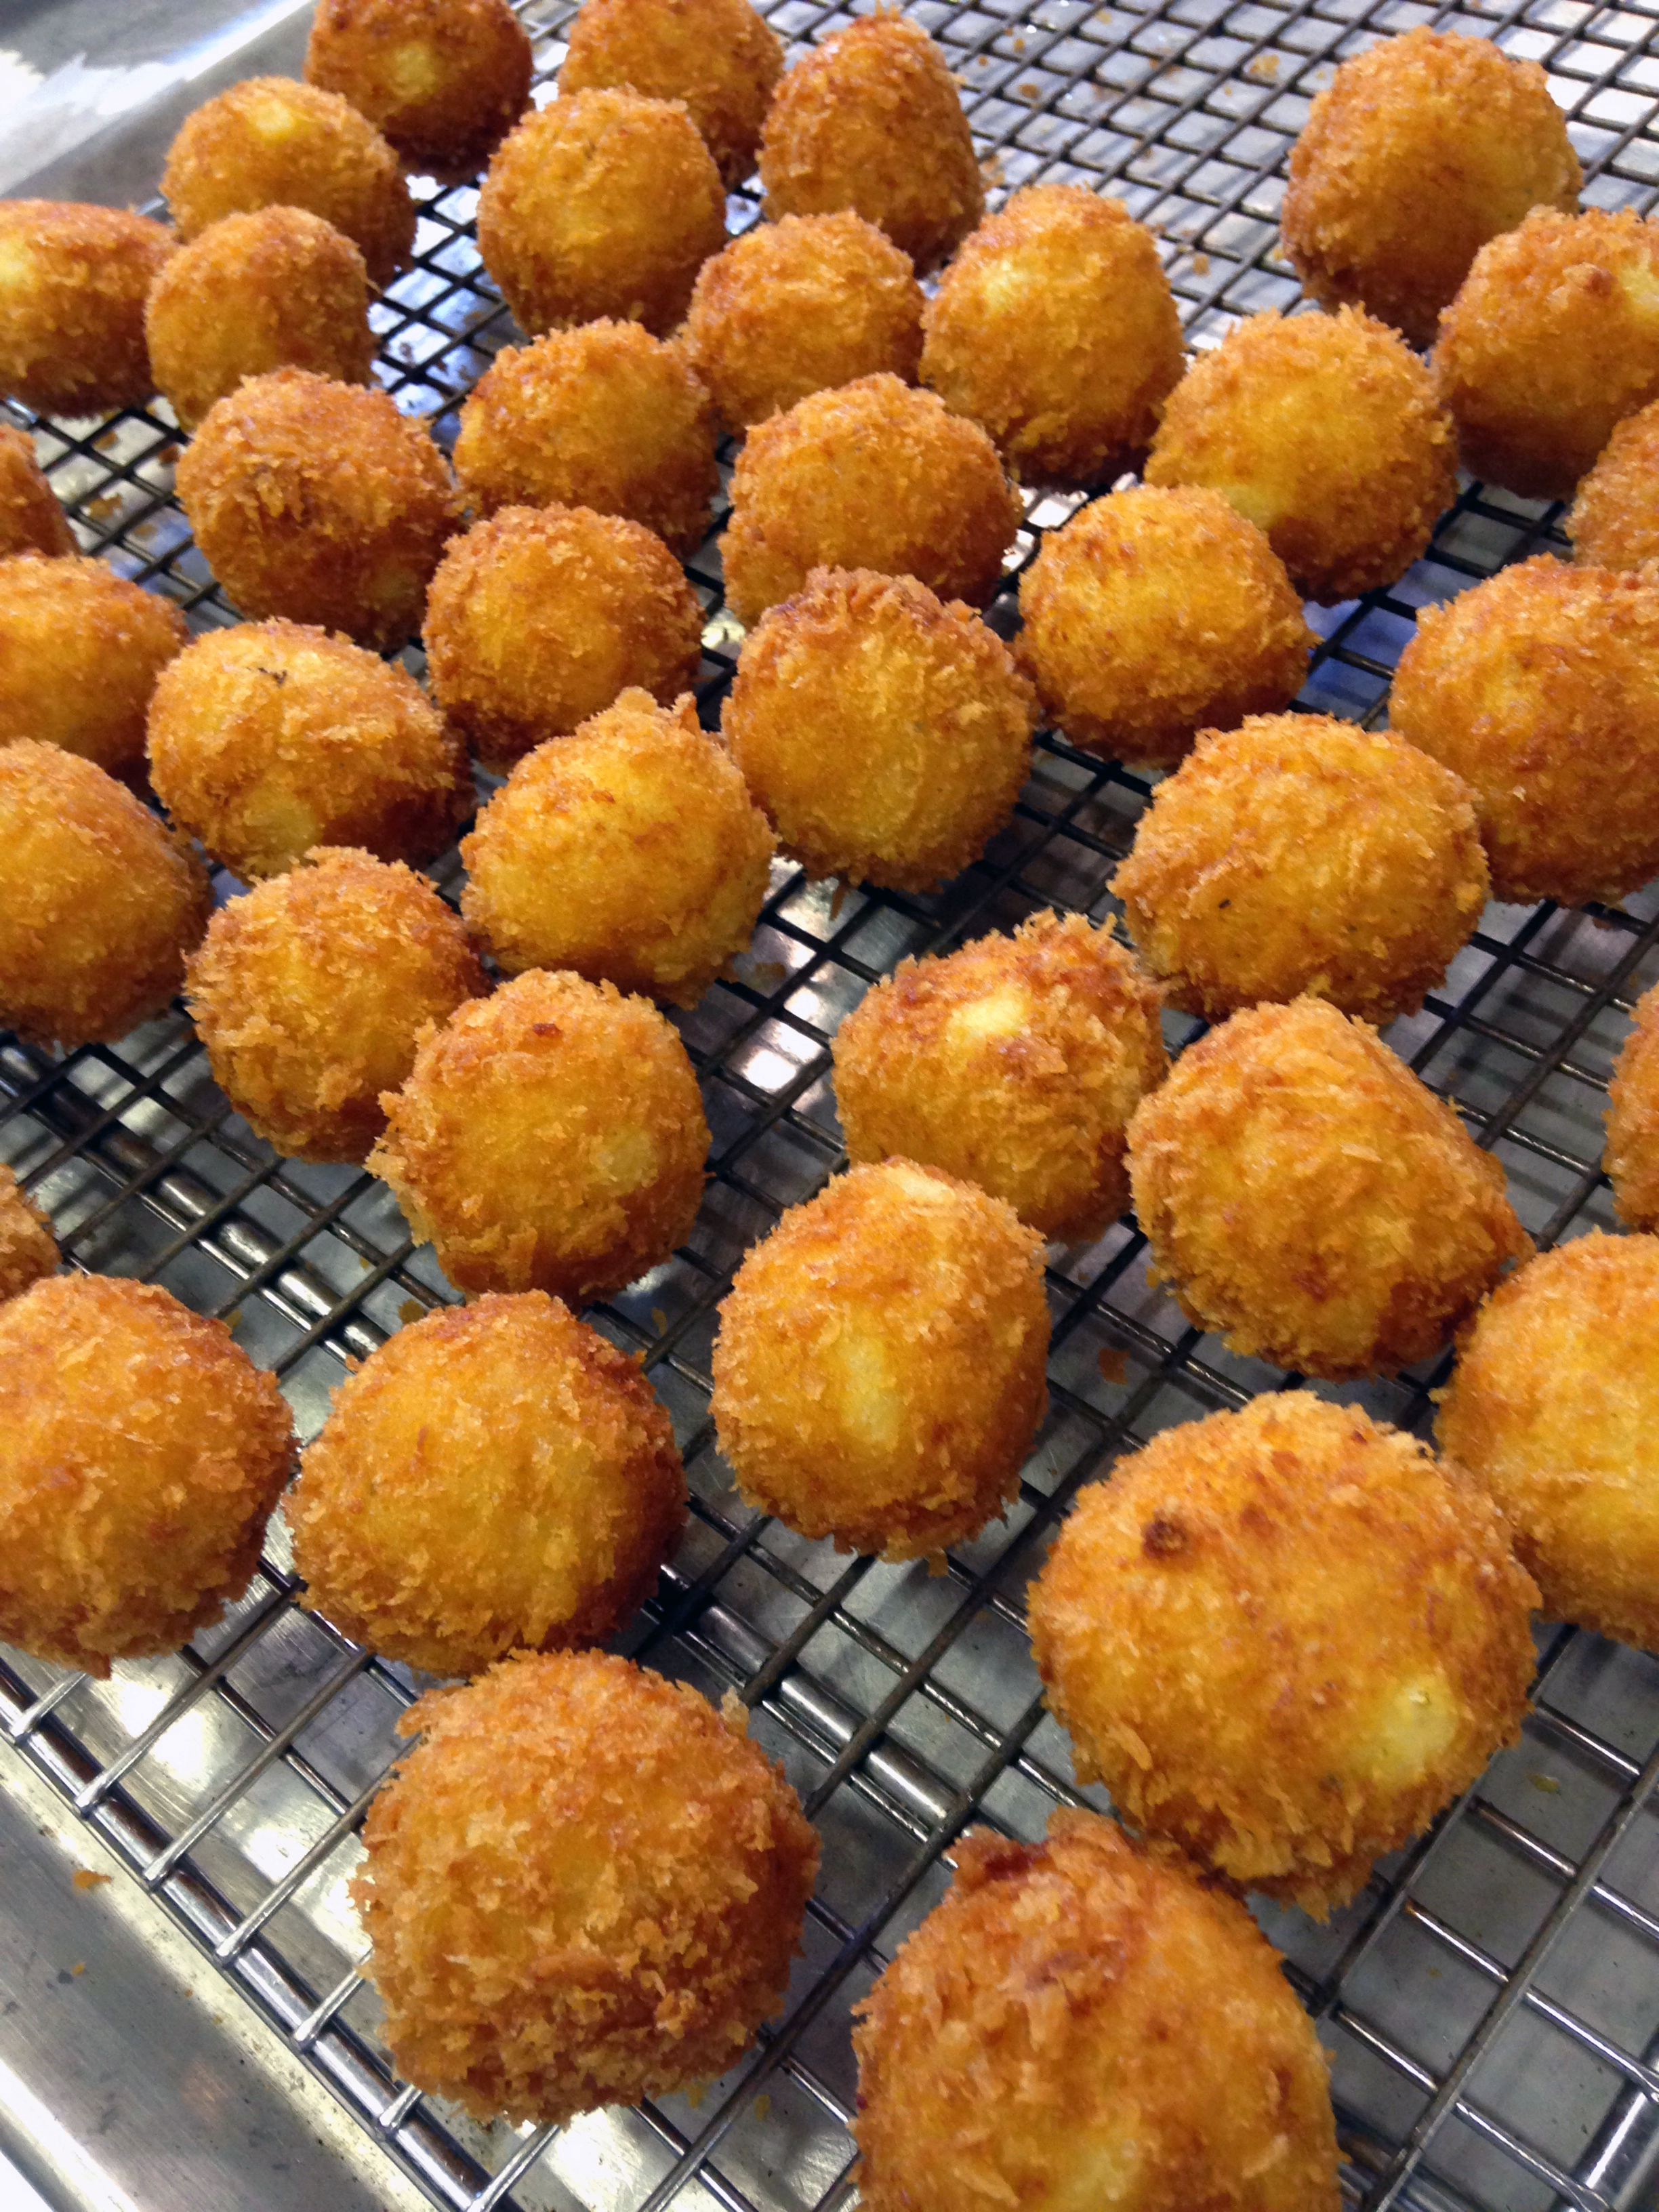 The mini arancini were a big hit